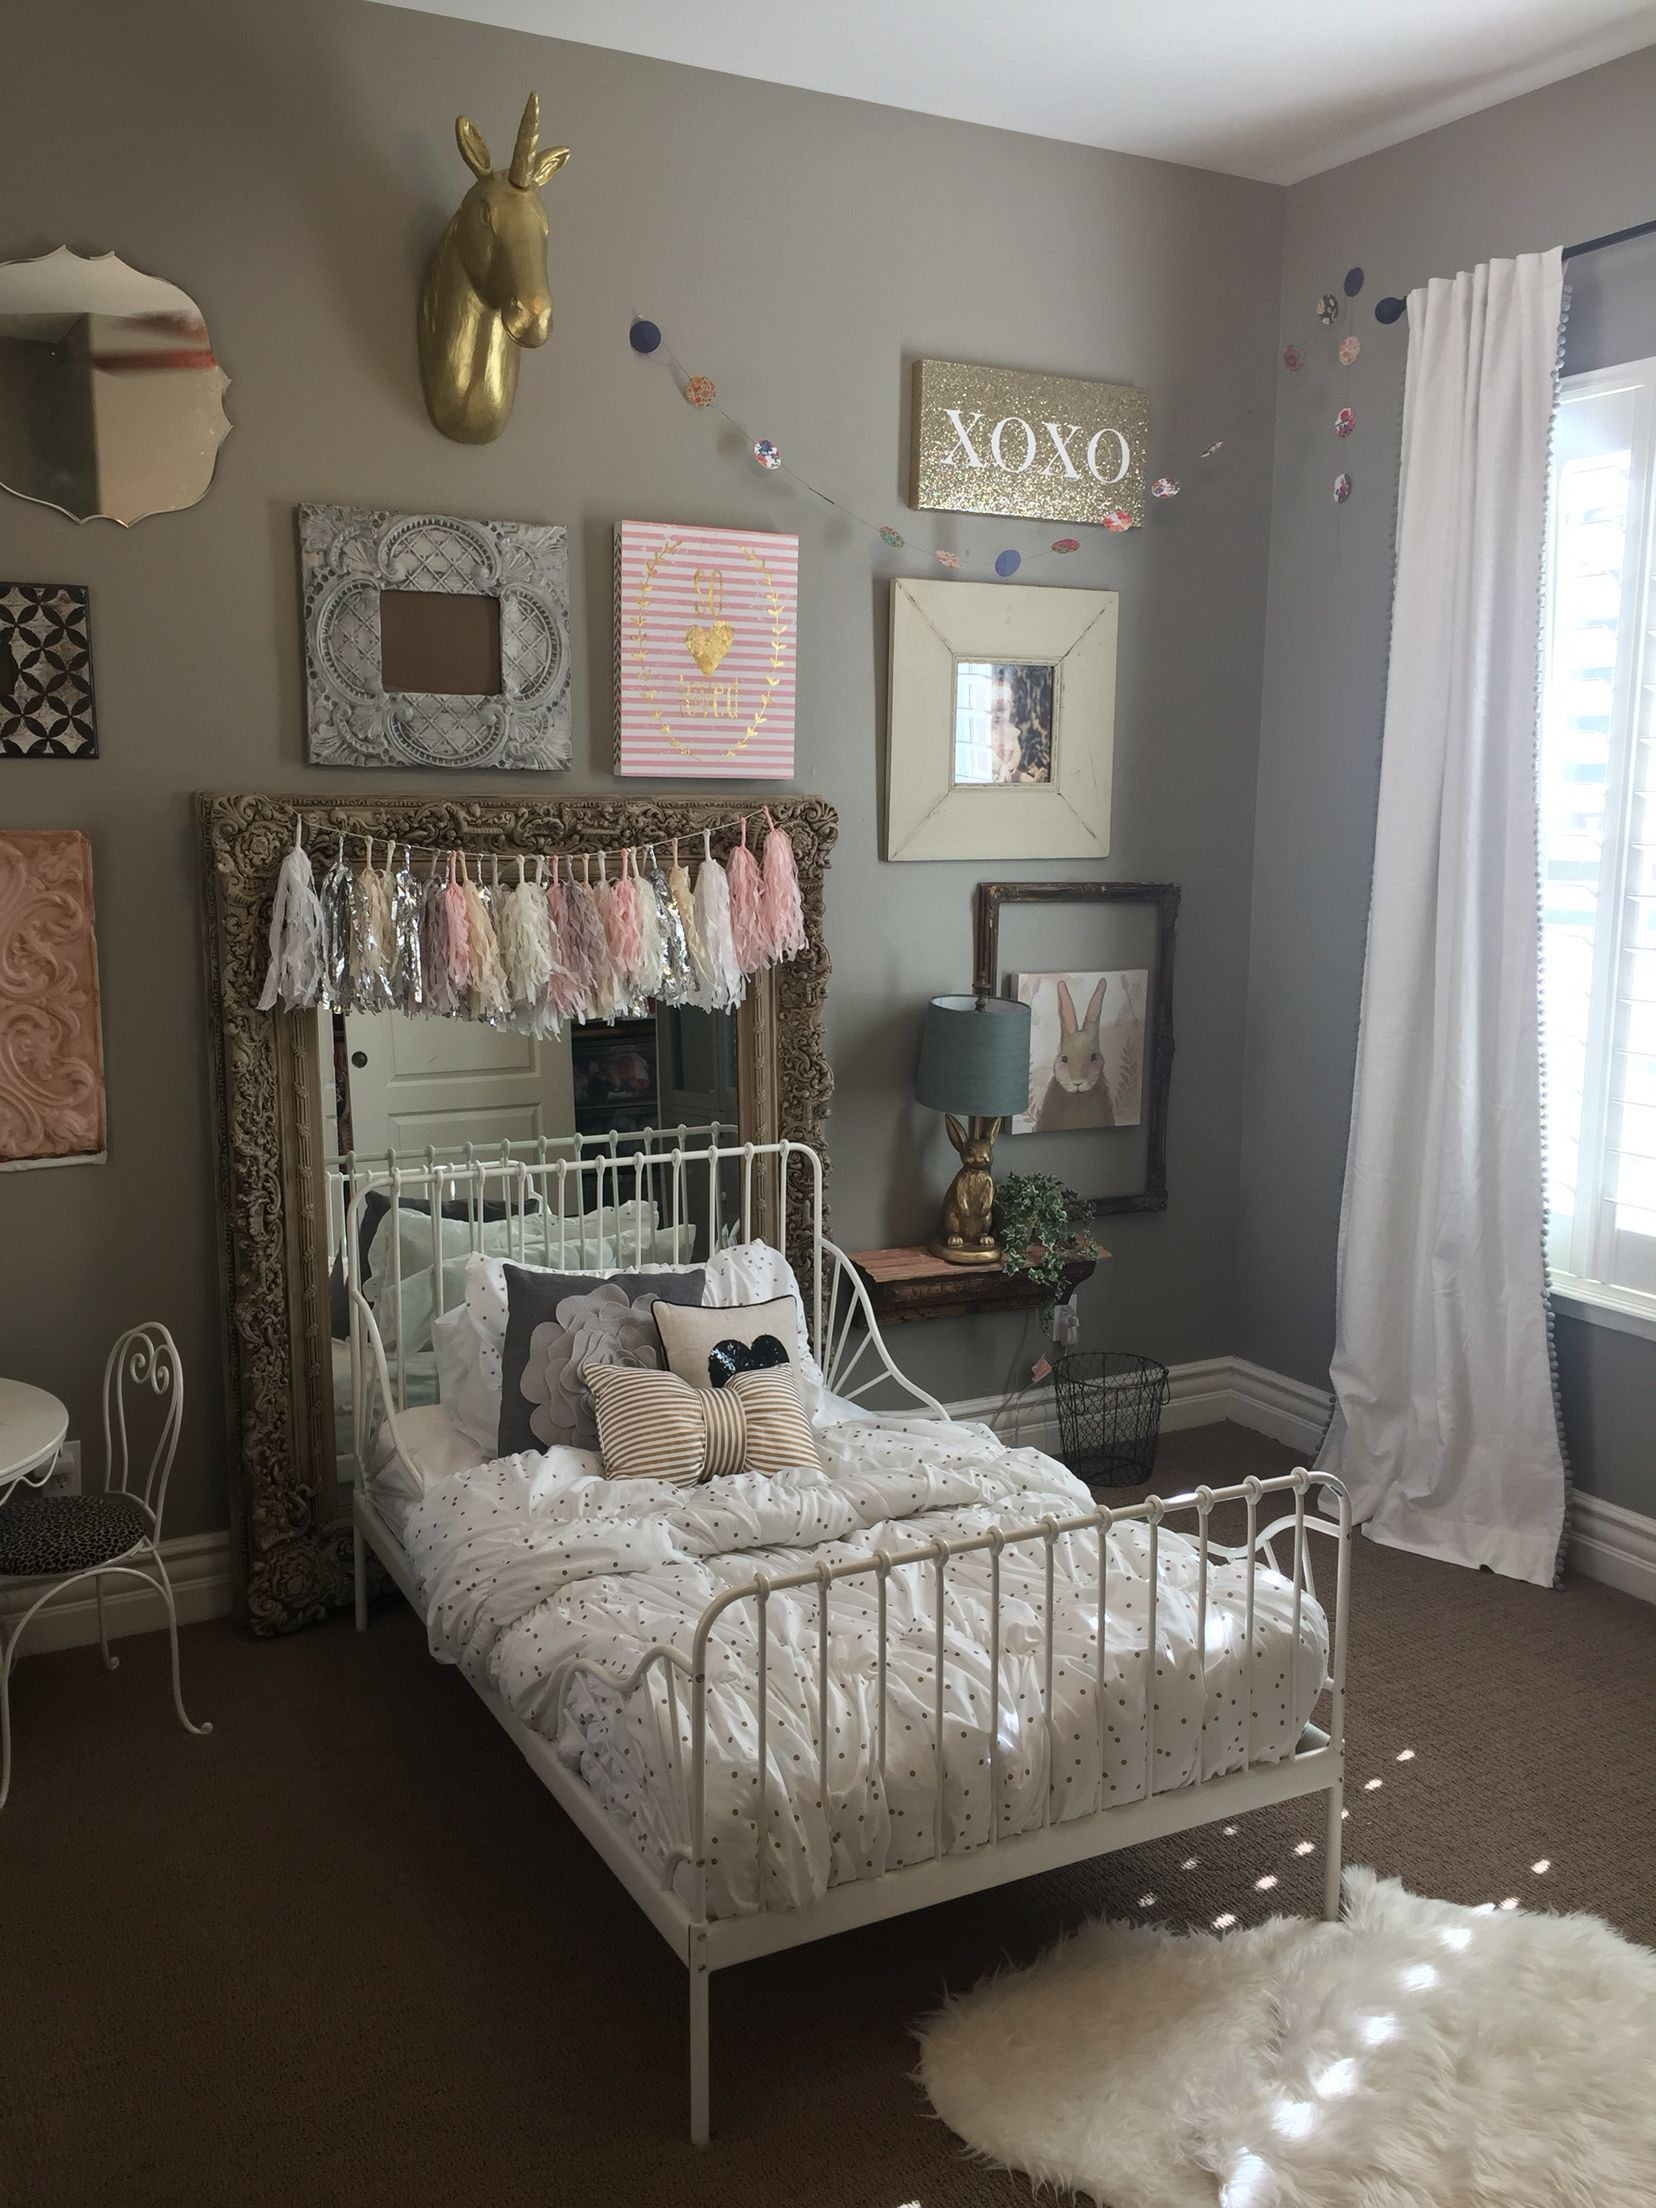 Decorating Bedroom With Bedroom. Girls  Bedroom Style   Ikea toddler bed  Toddler bed and Twins